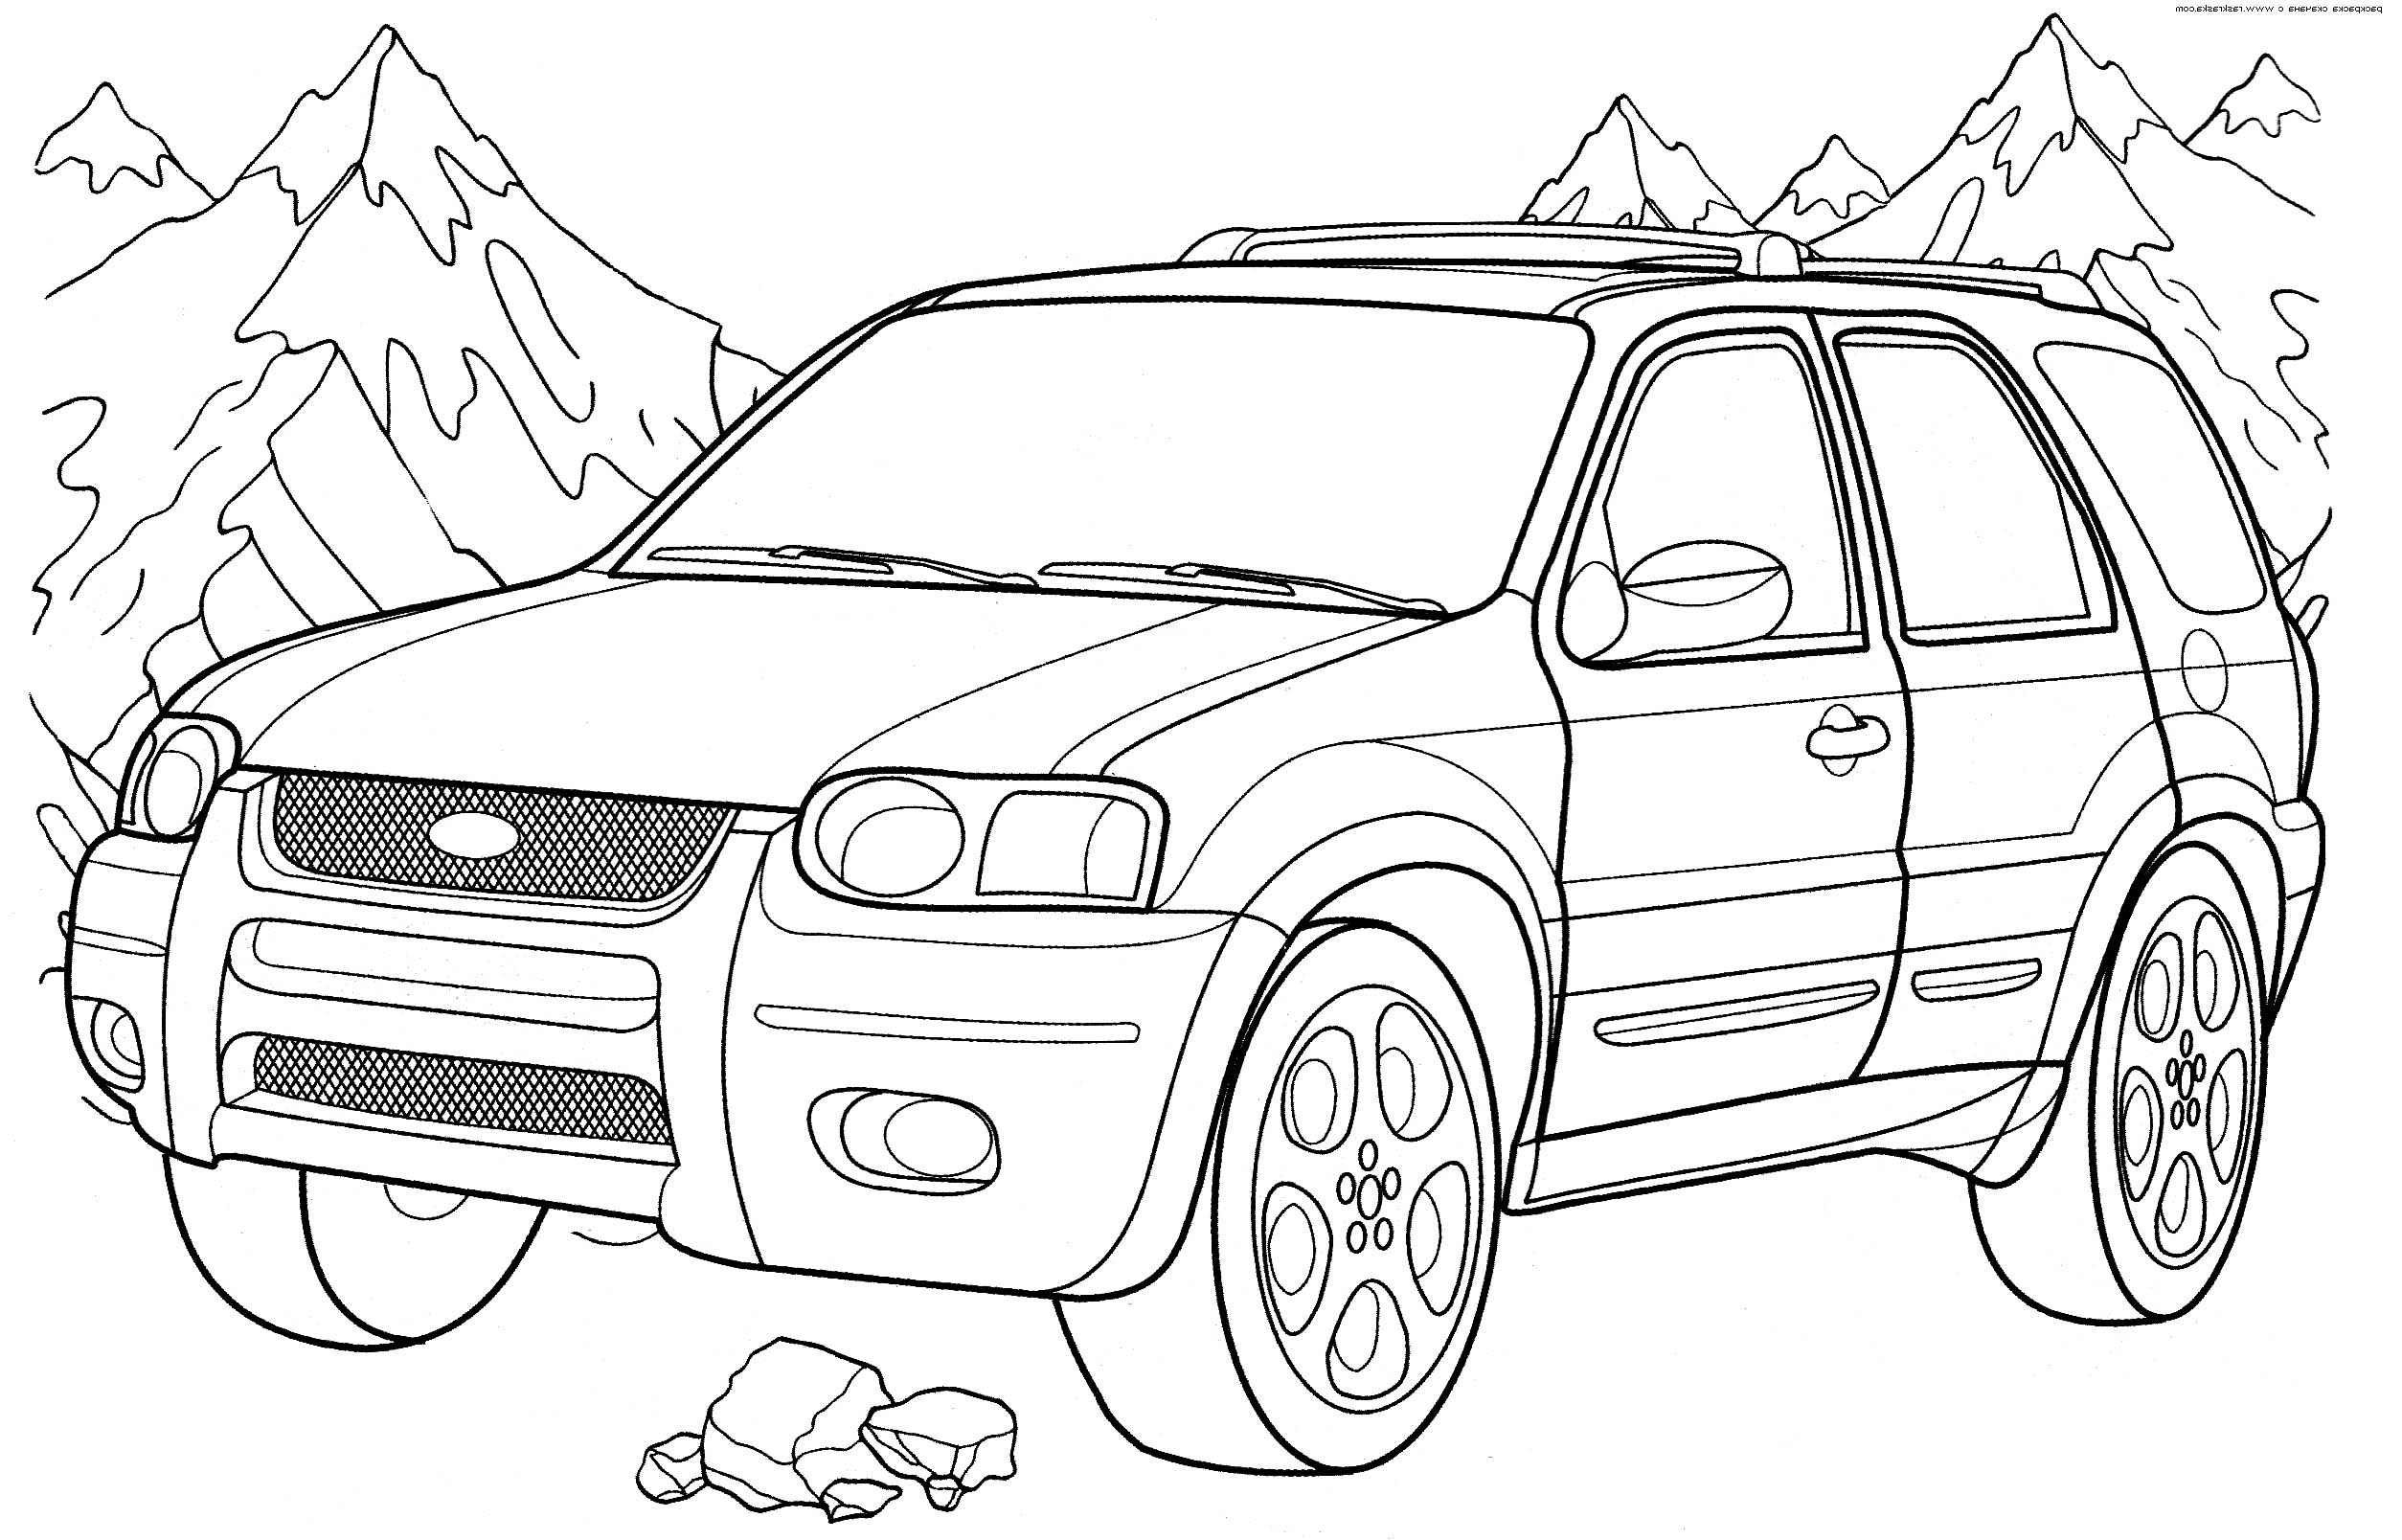 picture of a car to color free easy to print race car coloring pages tulamama of color car picture a to